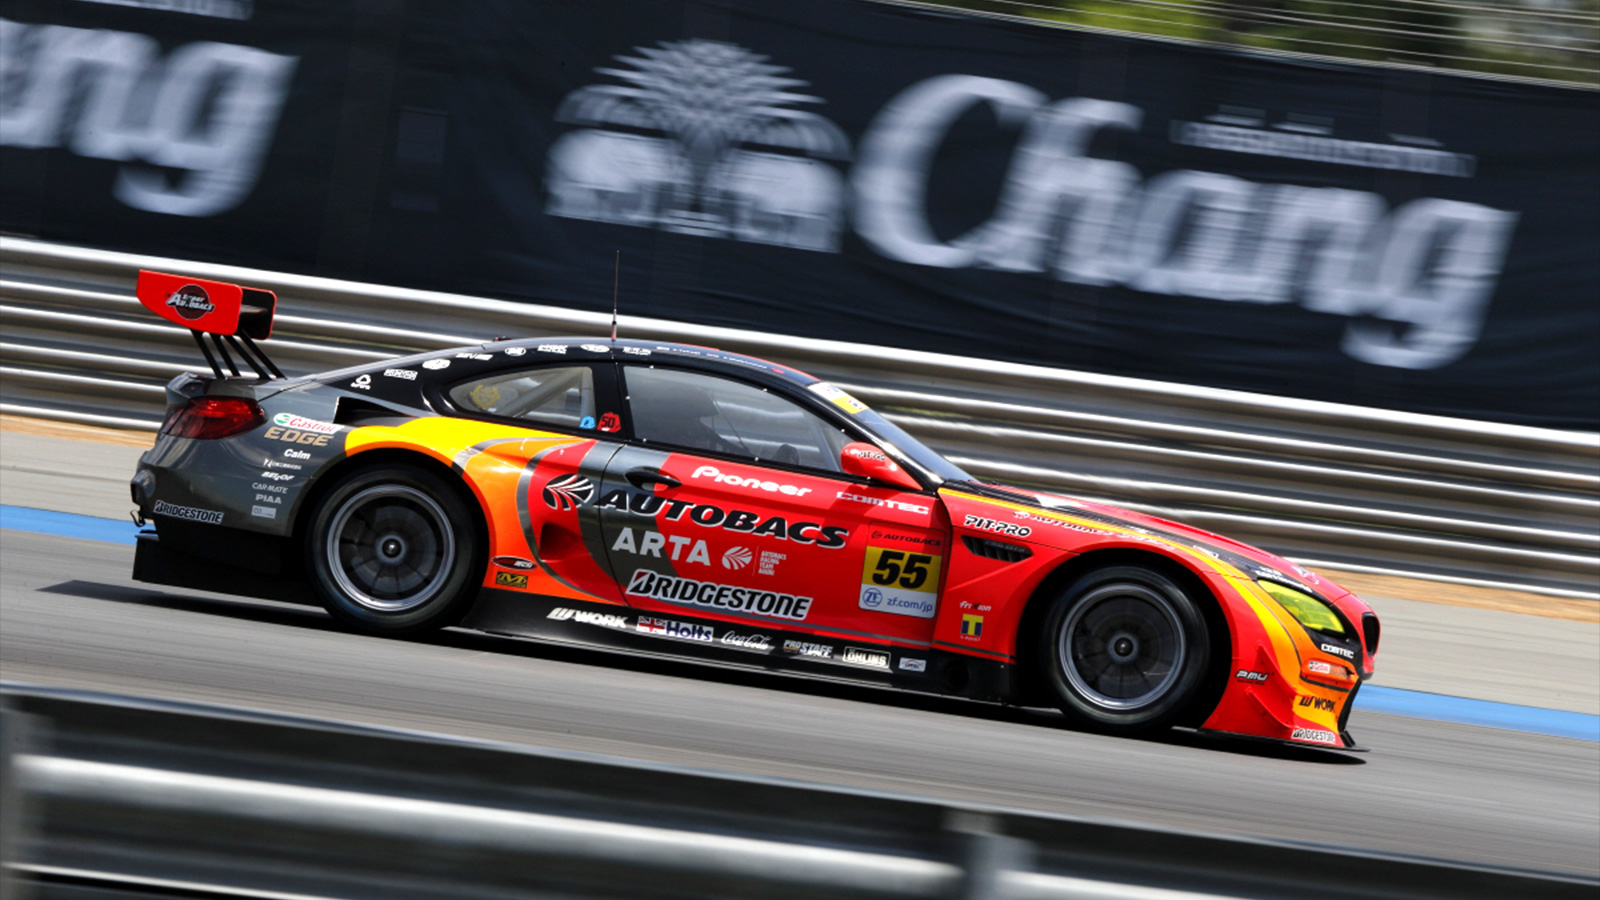 Late Puncture in Thailand Costs Walkinshaw and Takagi Certain GT300 Podium in Super GT